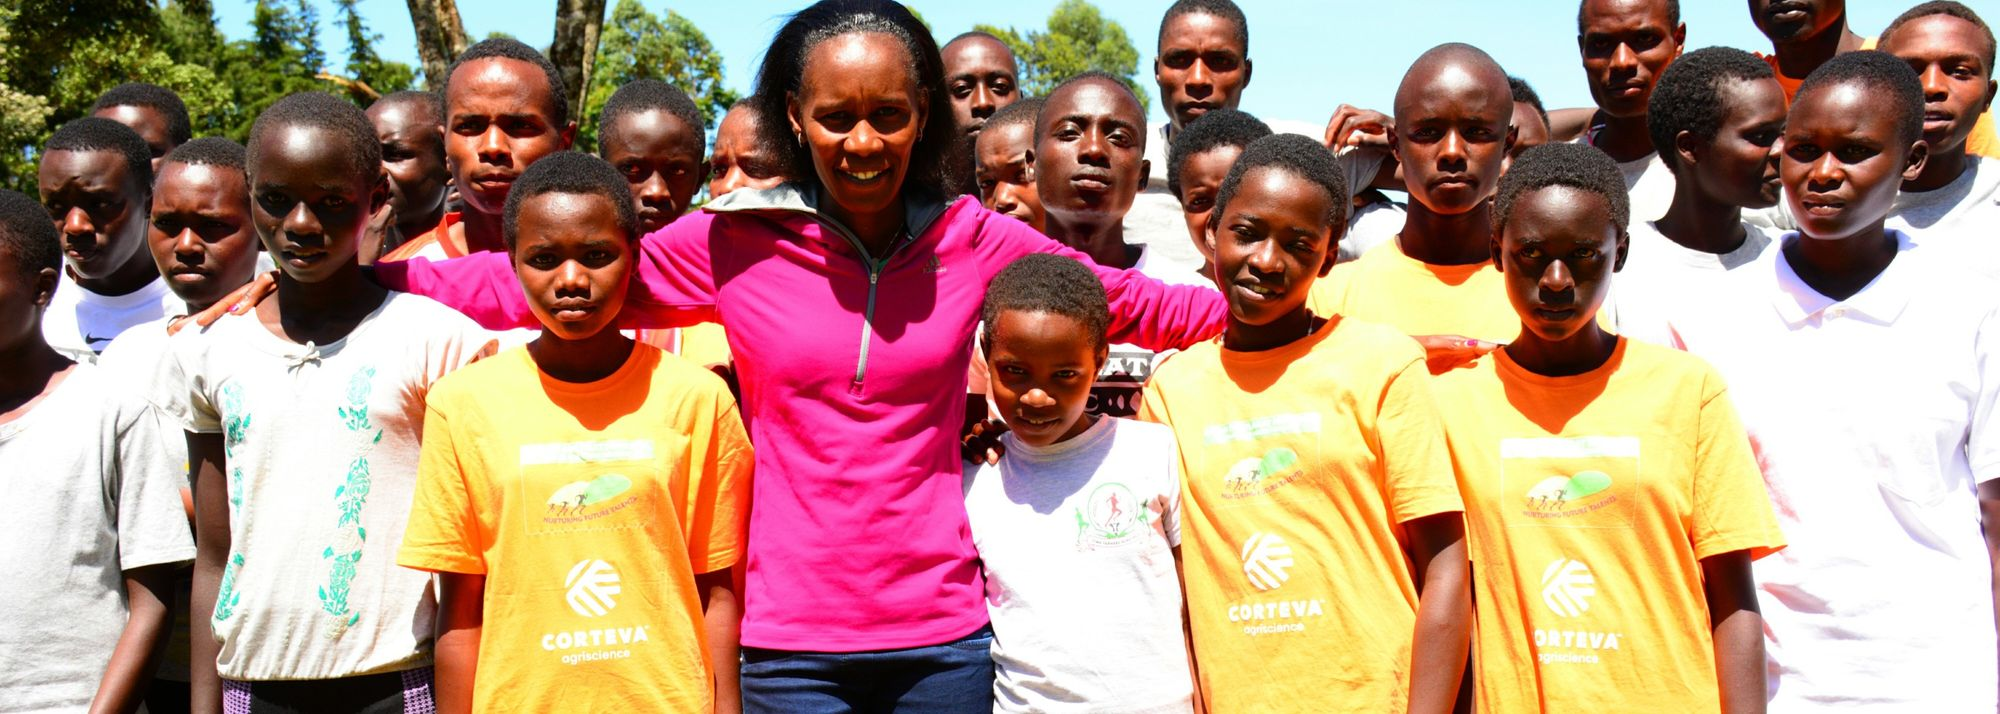 For what she is doing for young runners and the community, Janeth Jepkosgei remains a heroine even after changing her career from an athlete to a coach and mentor.